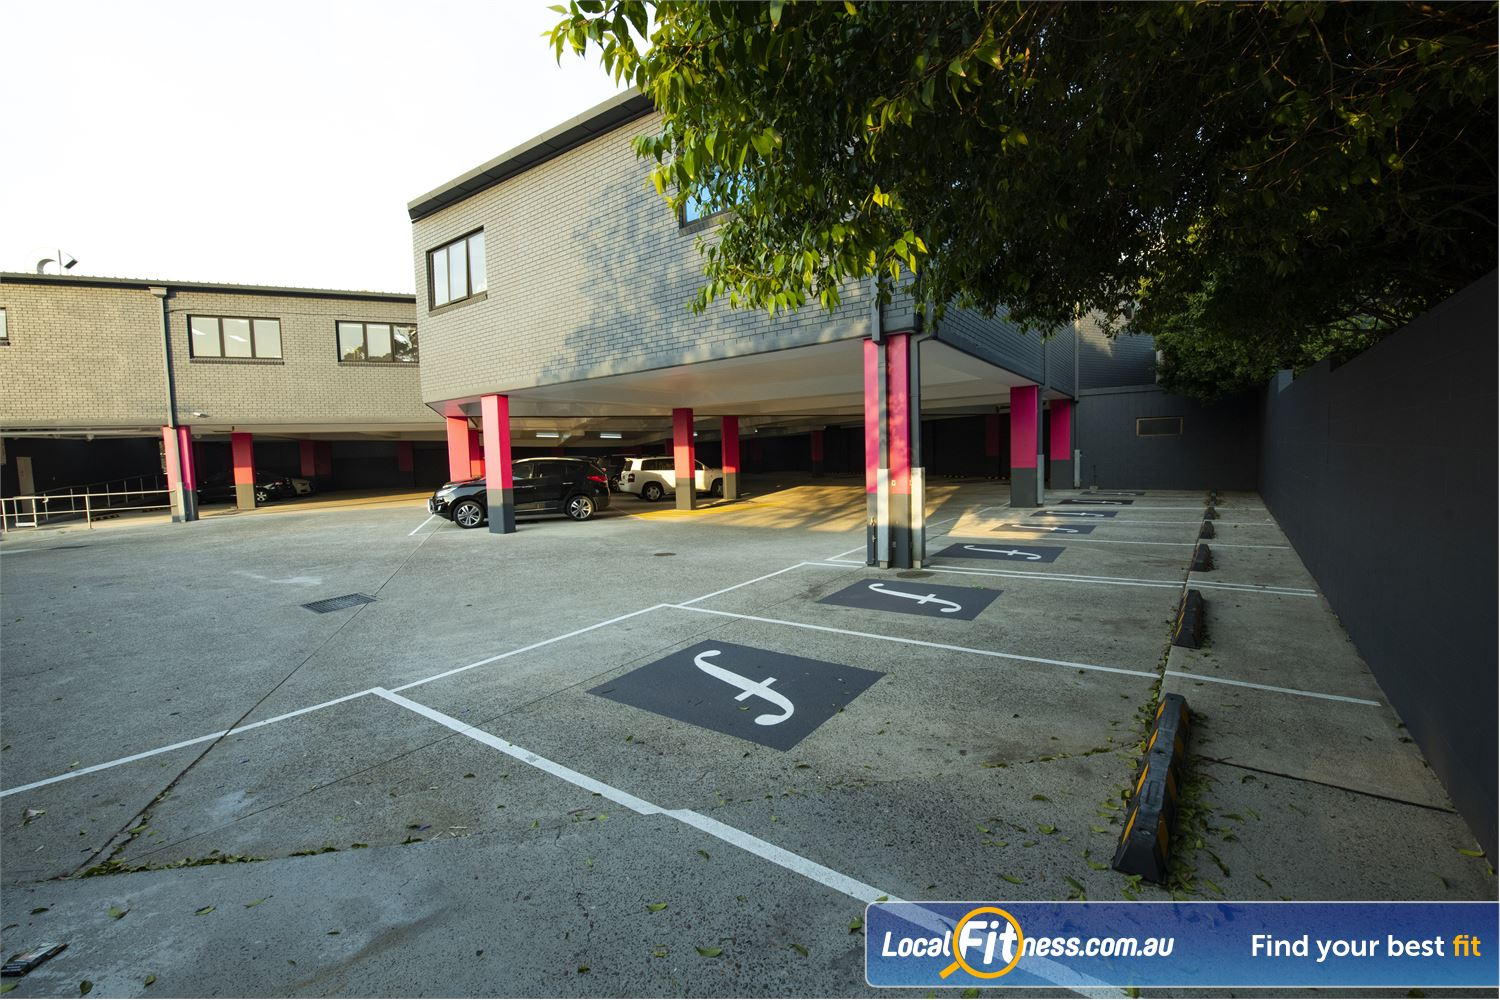 Fernwood Fitness Beverly Hills It's like having valet parking at Fernwood Beverly Hills.